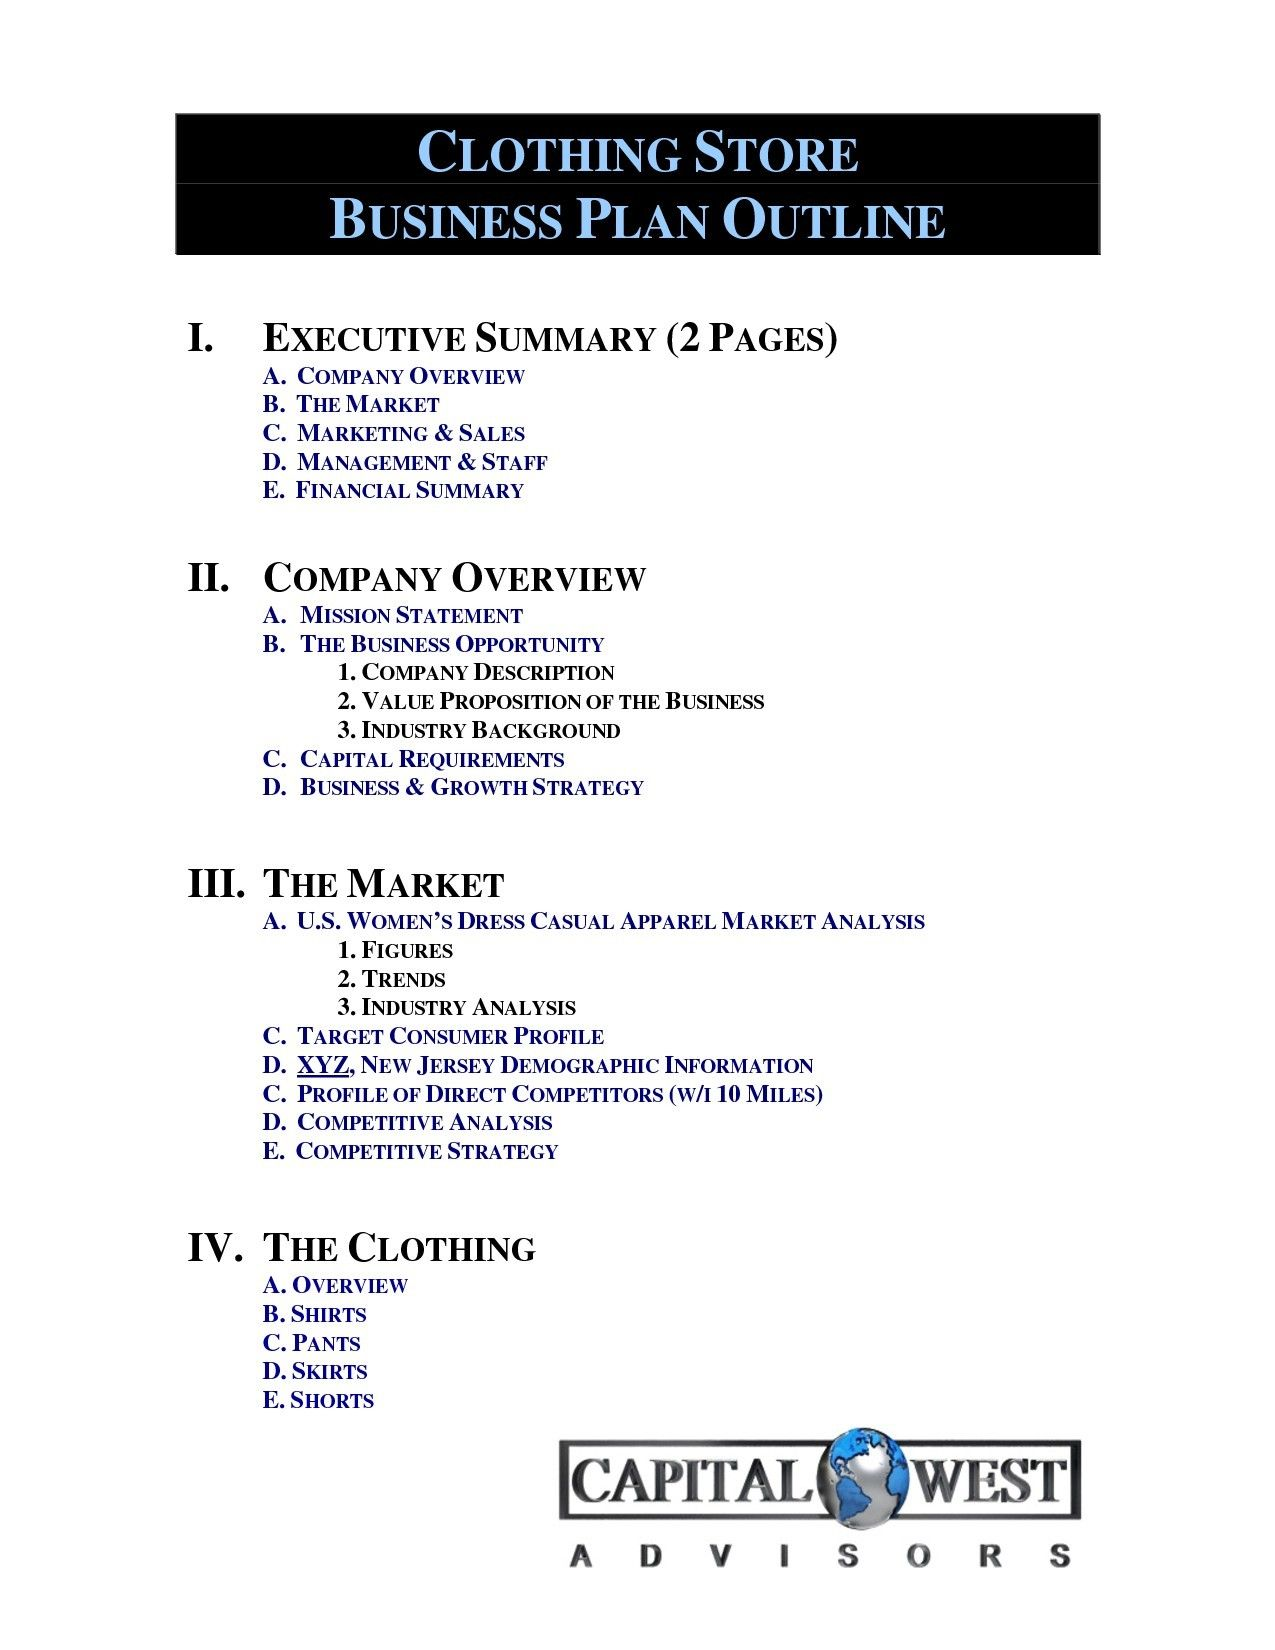 New Clothing Line Business Plan Template Business Plan Template